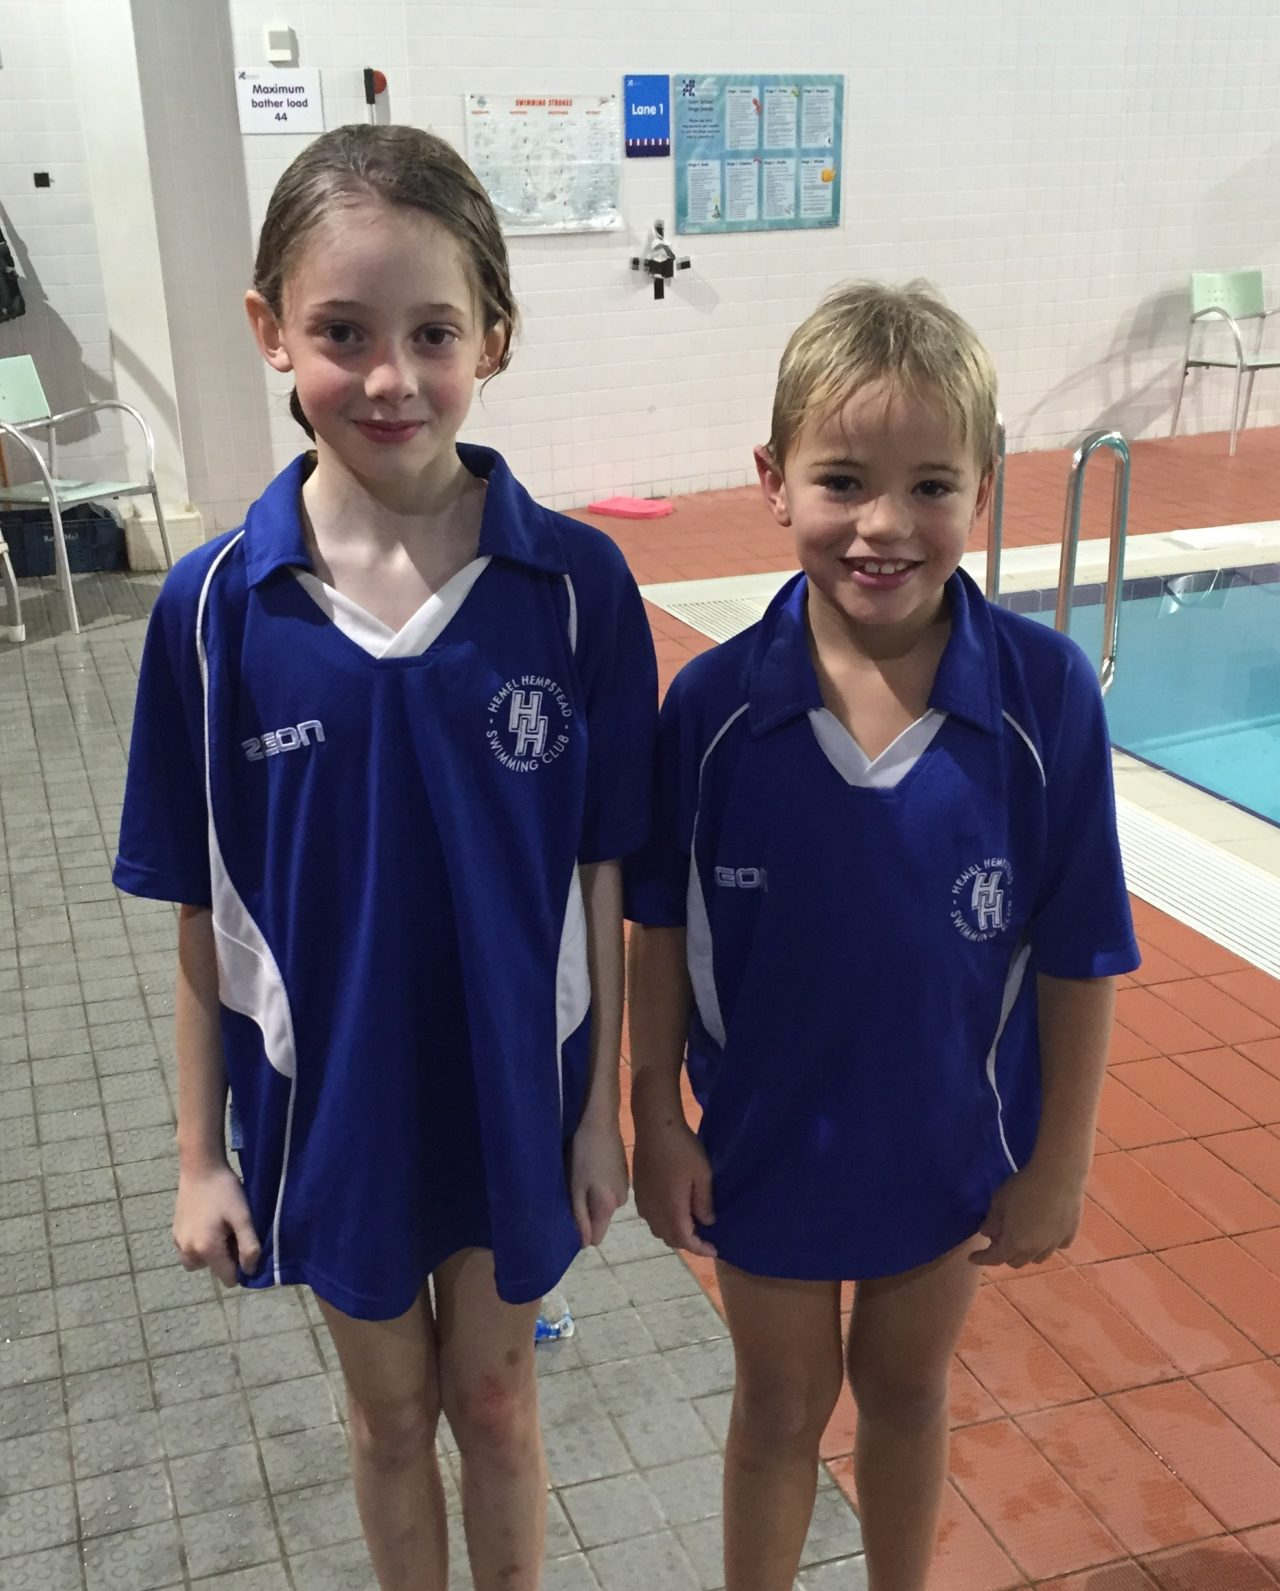 https://hhsc.org.uk/wp-content/uploads/2016/12/november_2016_swimmers_of_the_month-1280x1591.jpeg